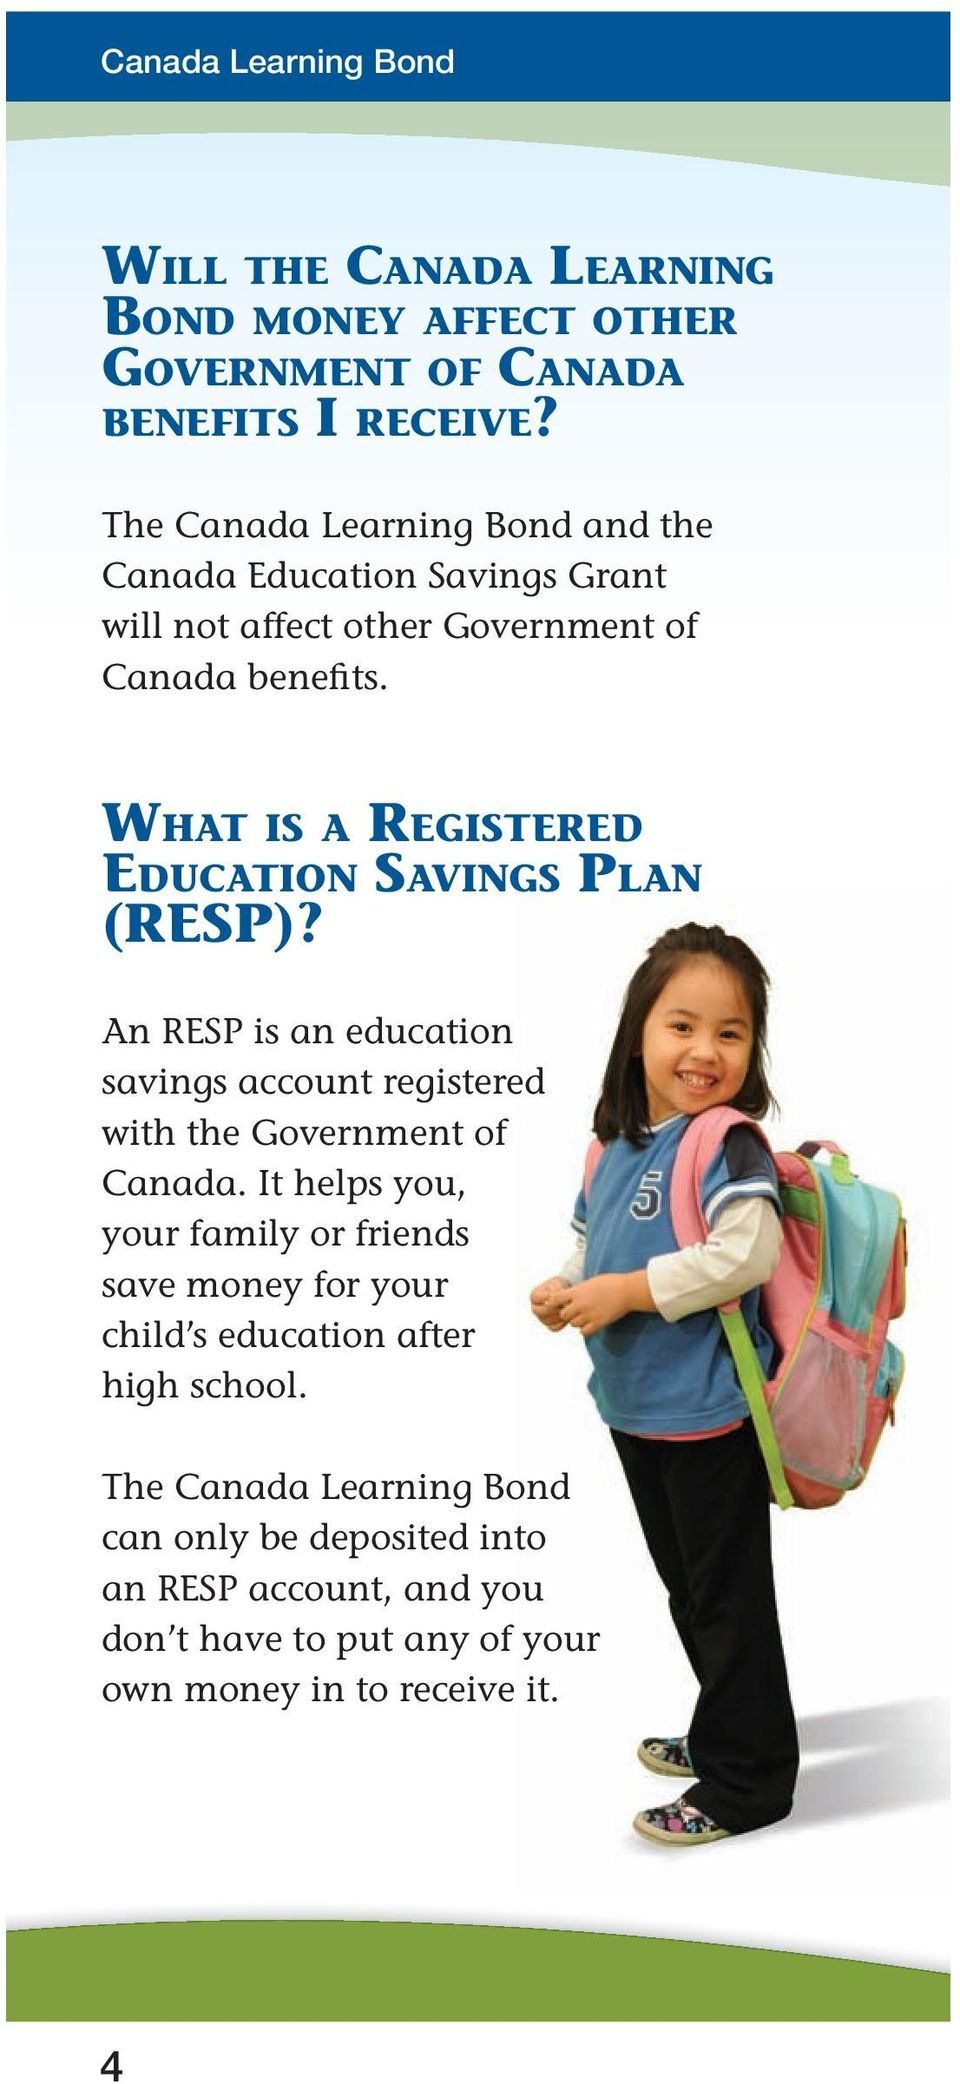 WHAT IS A REGISTERED EDUCATION SAVINGS PLAN (RESP)? An RESP is an education savings account registered with the Government of Canada.